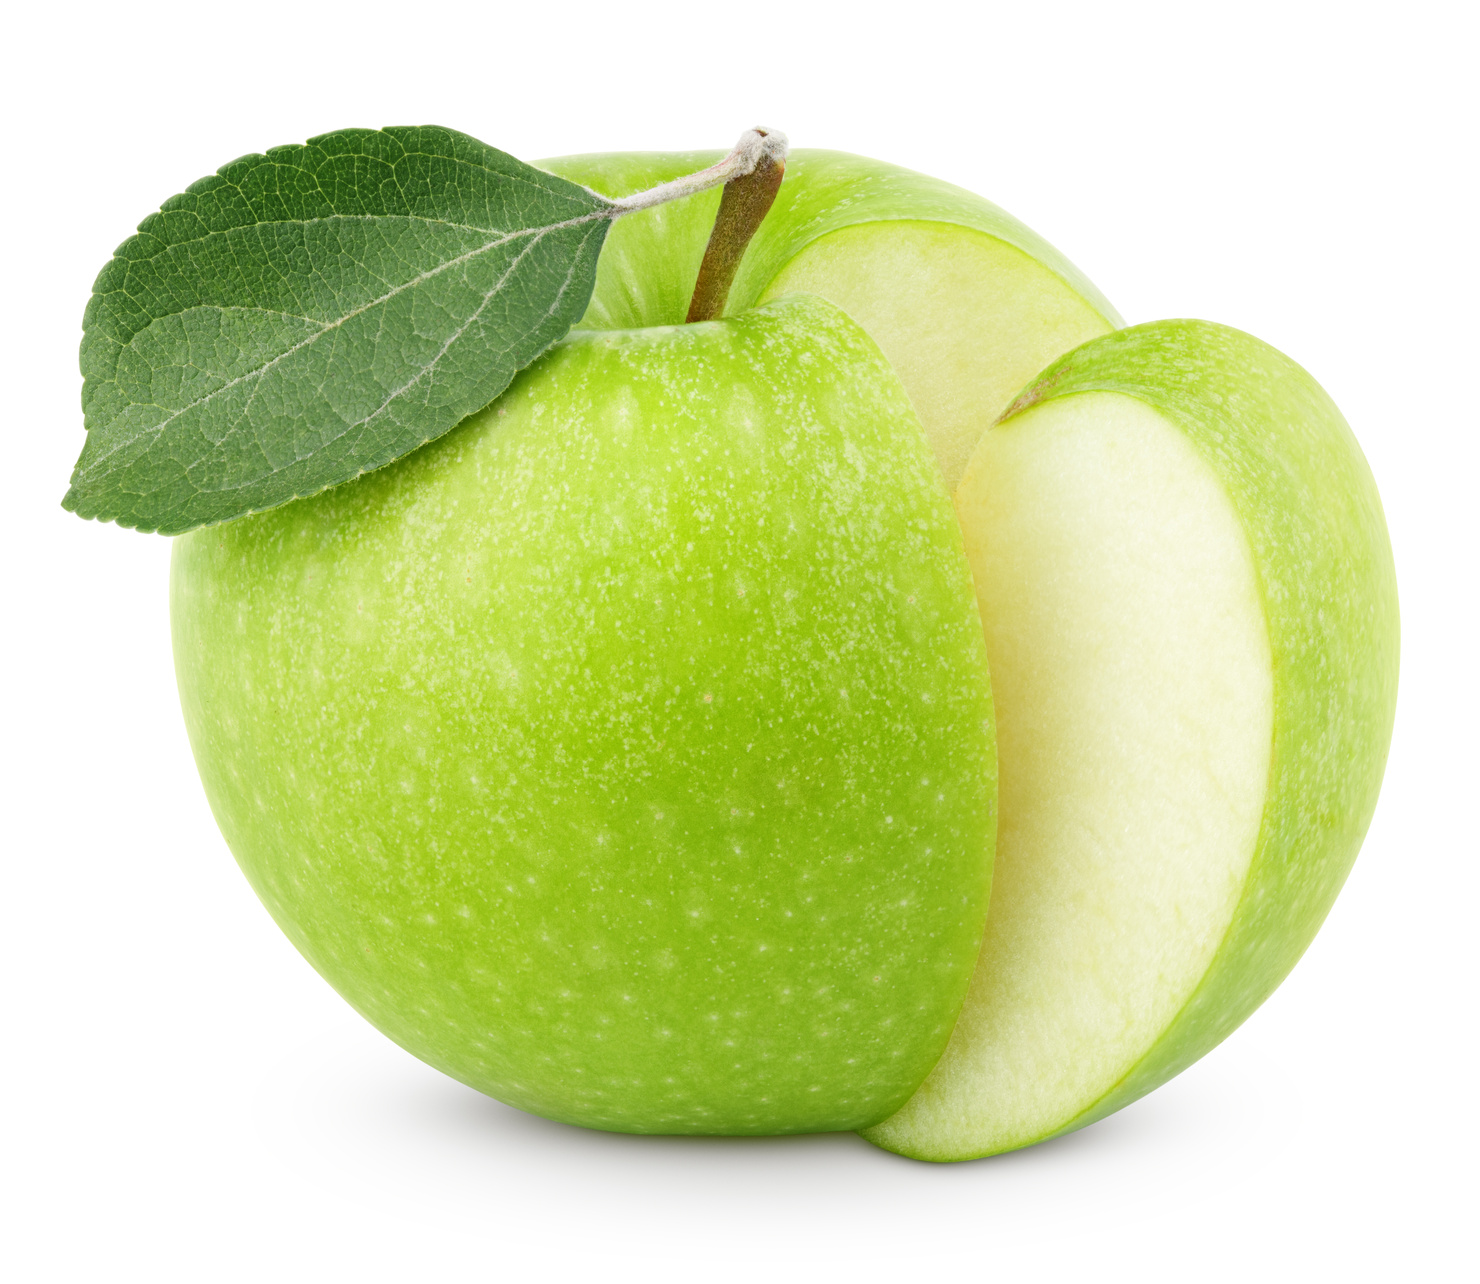 Green apple vegetables pictures